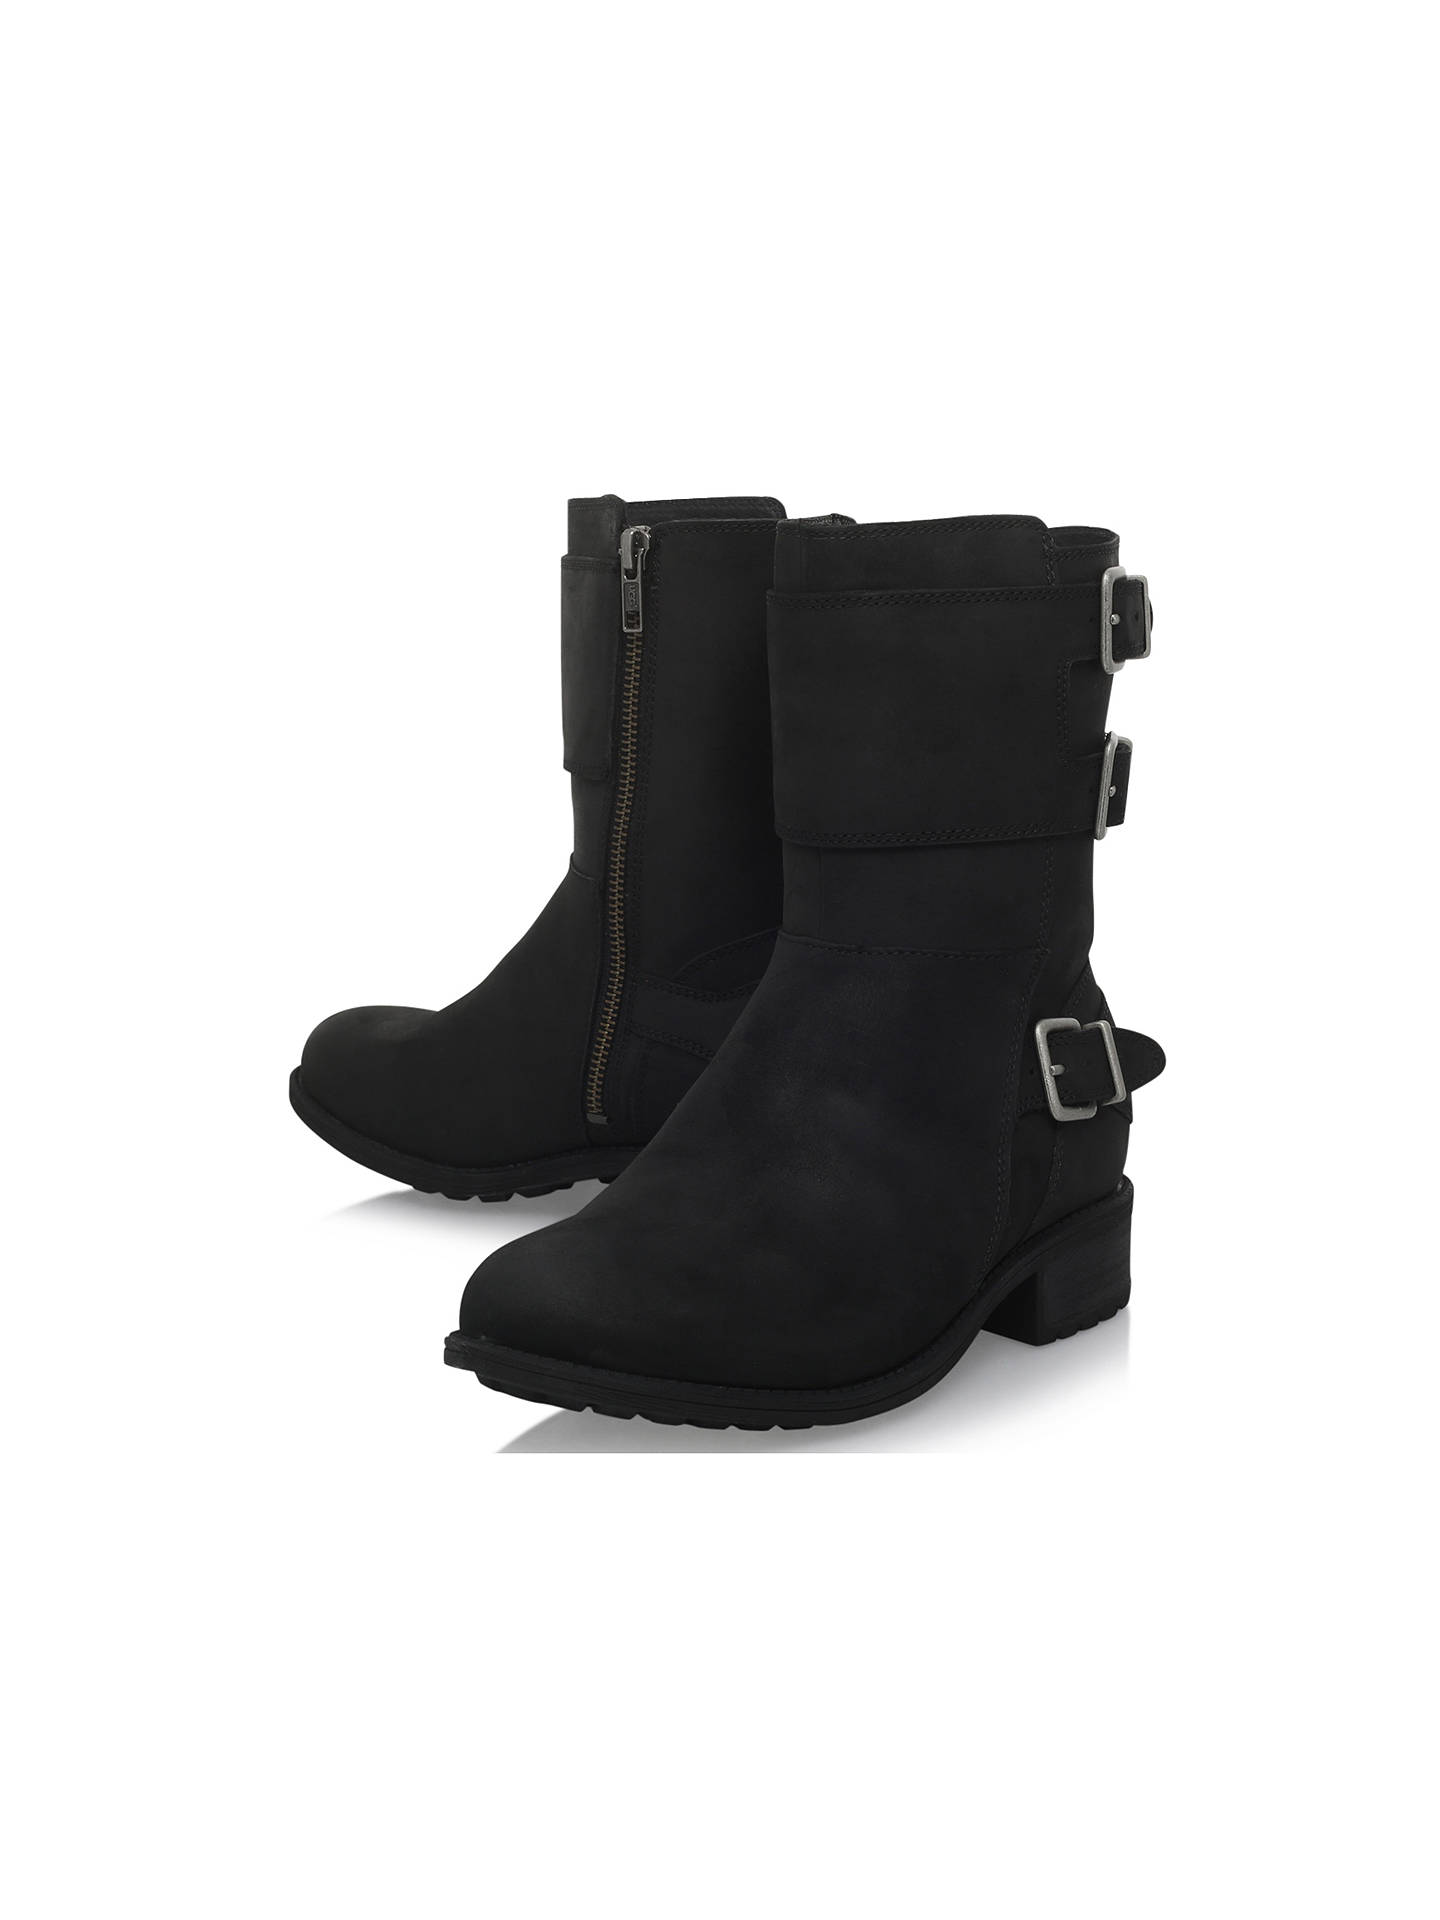 19b013c69b5 UGG Wilcox Buckle Ankle Boots, Black at John Lewis & Partners